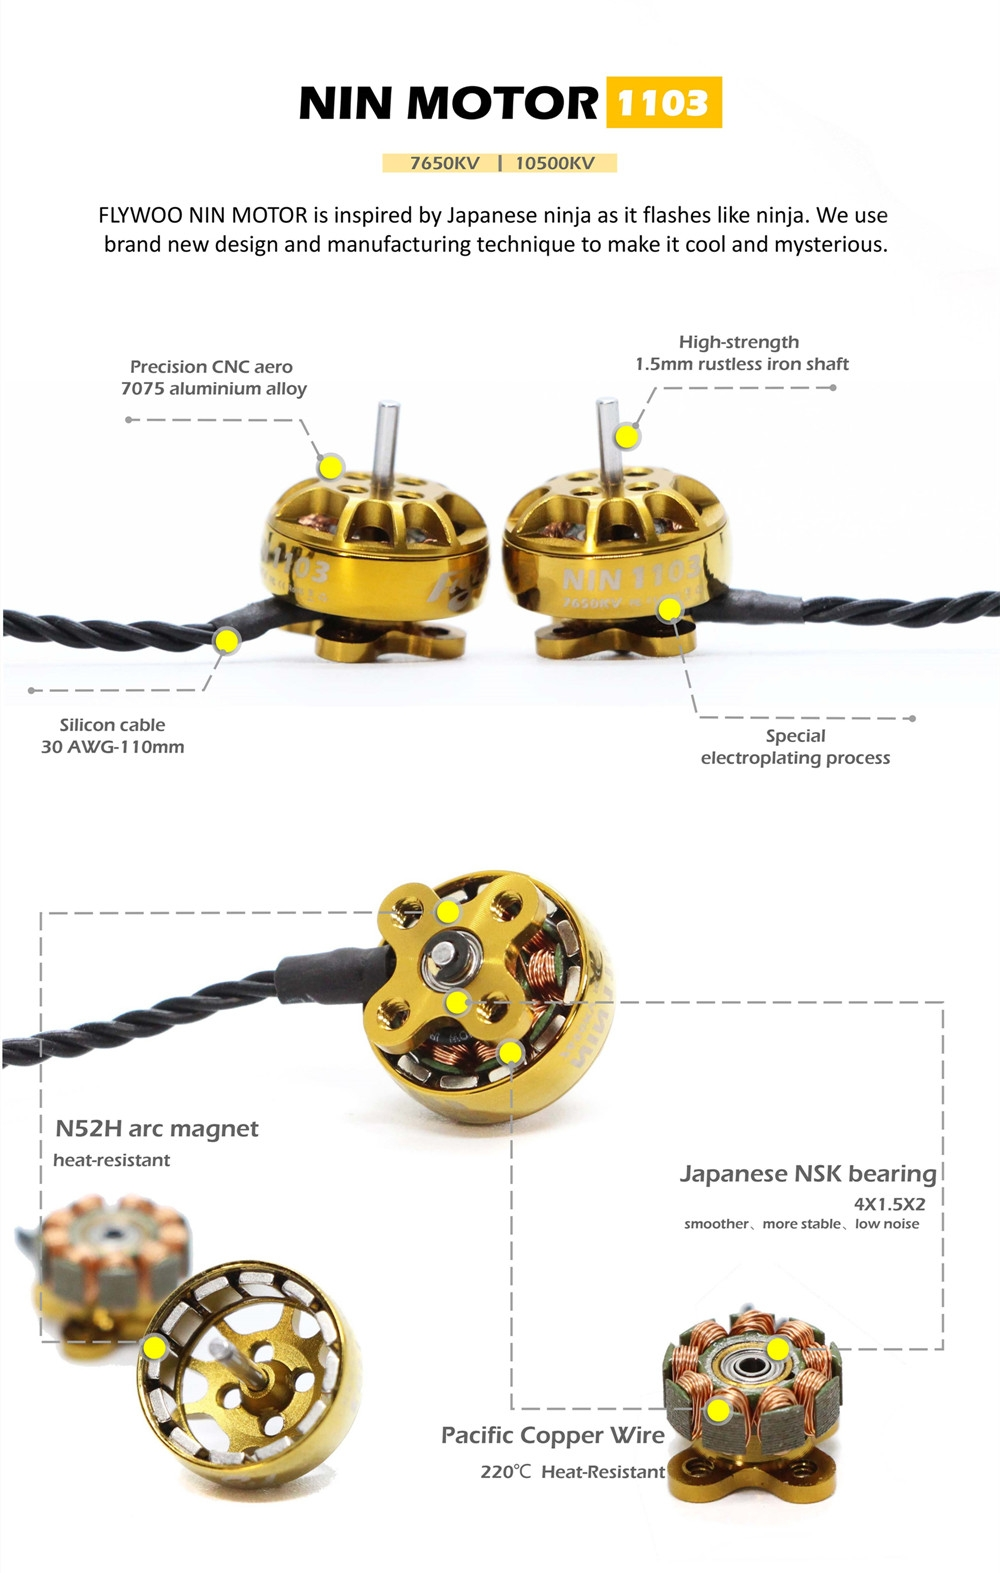 FLYWOO NIN TINY NT1103 1103 7650KV 10500KV 1-3S Brushless Motor for RC Drone FPV Racing